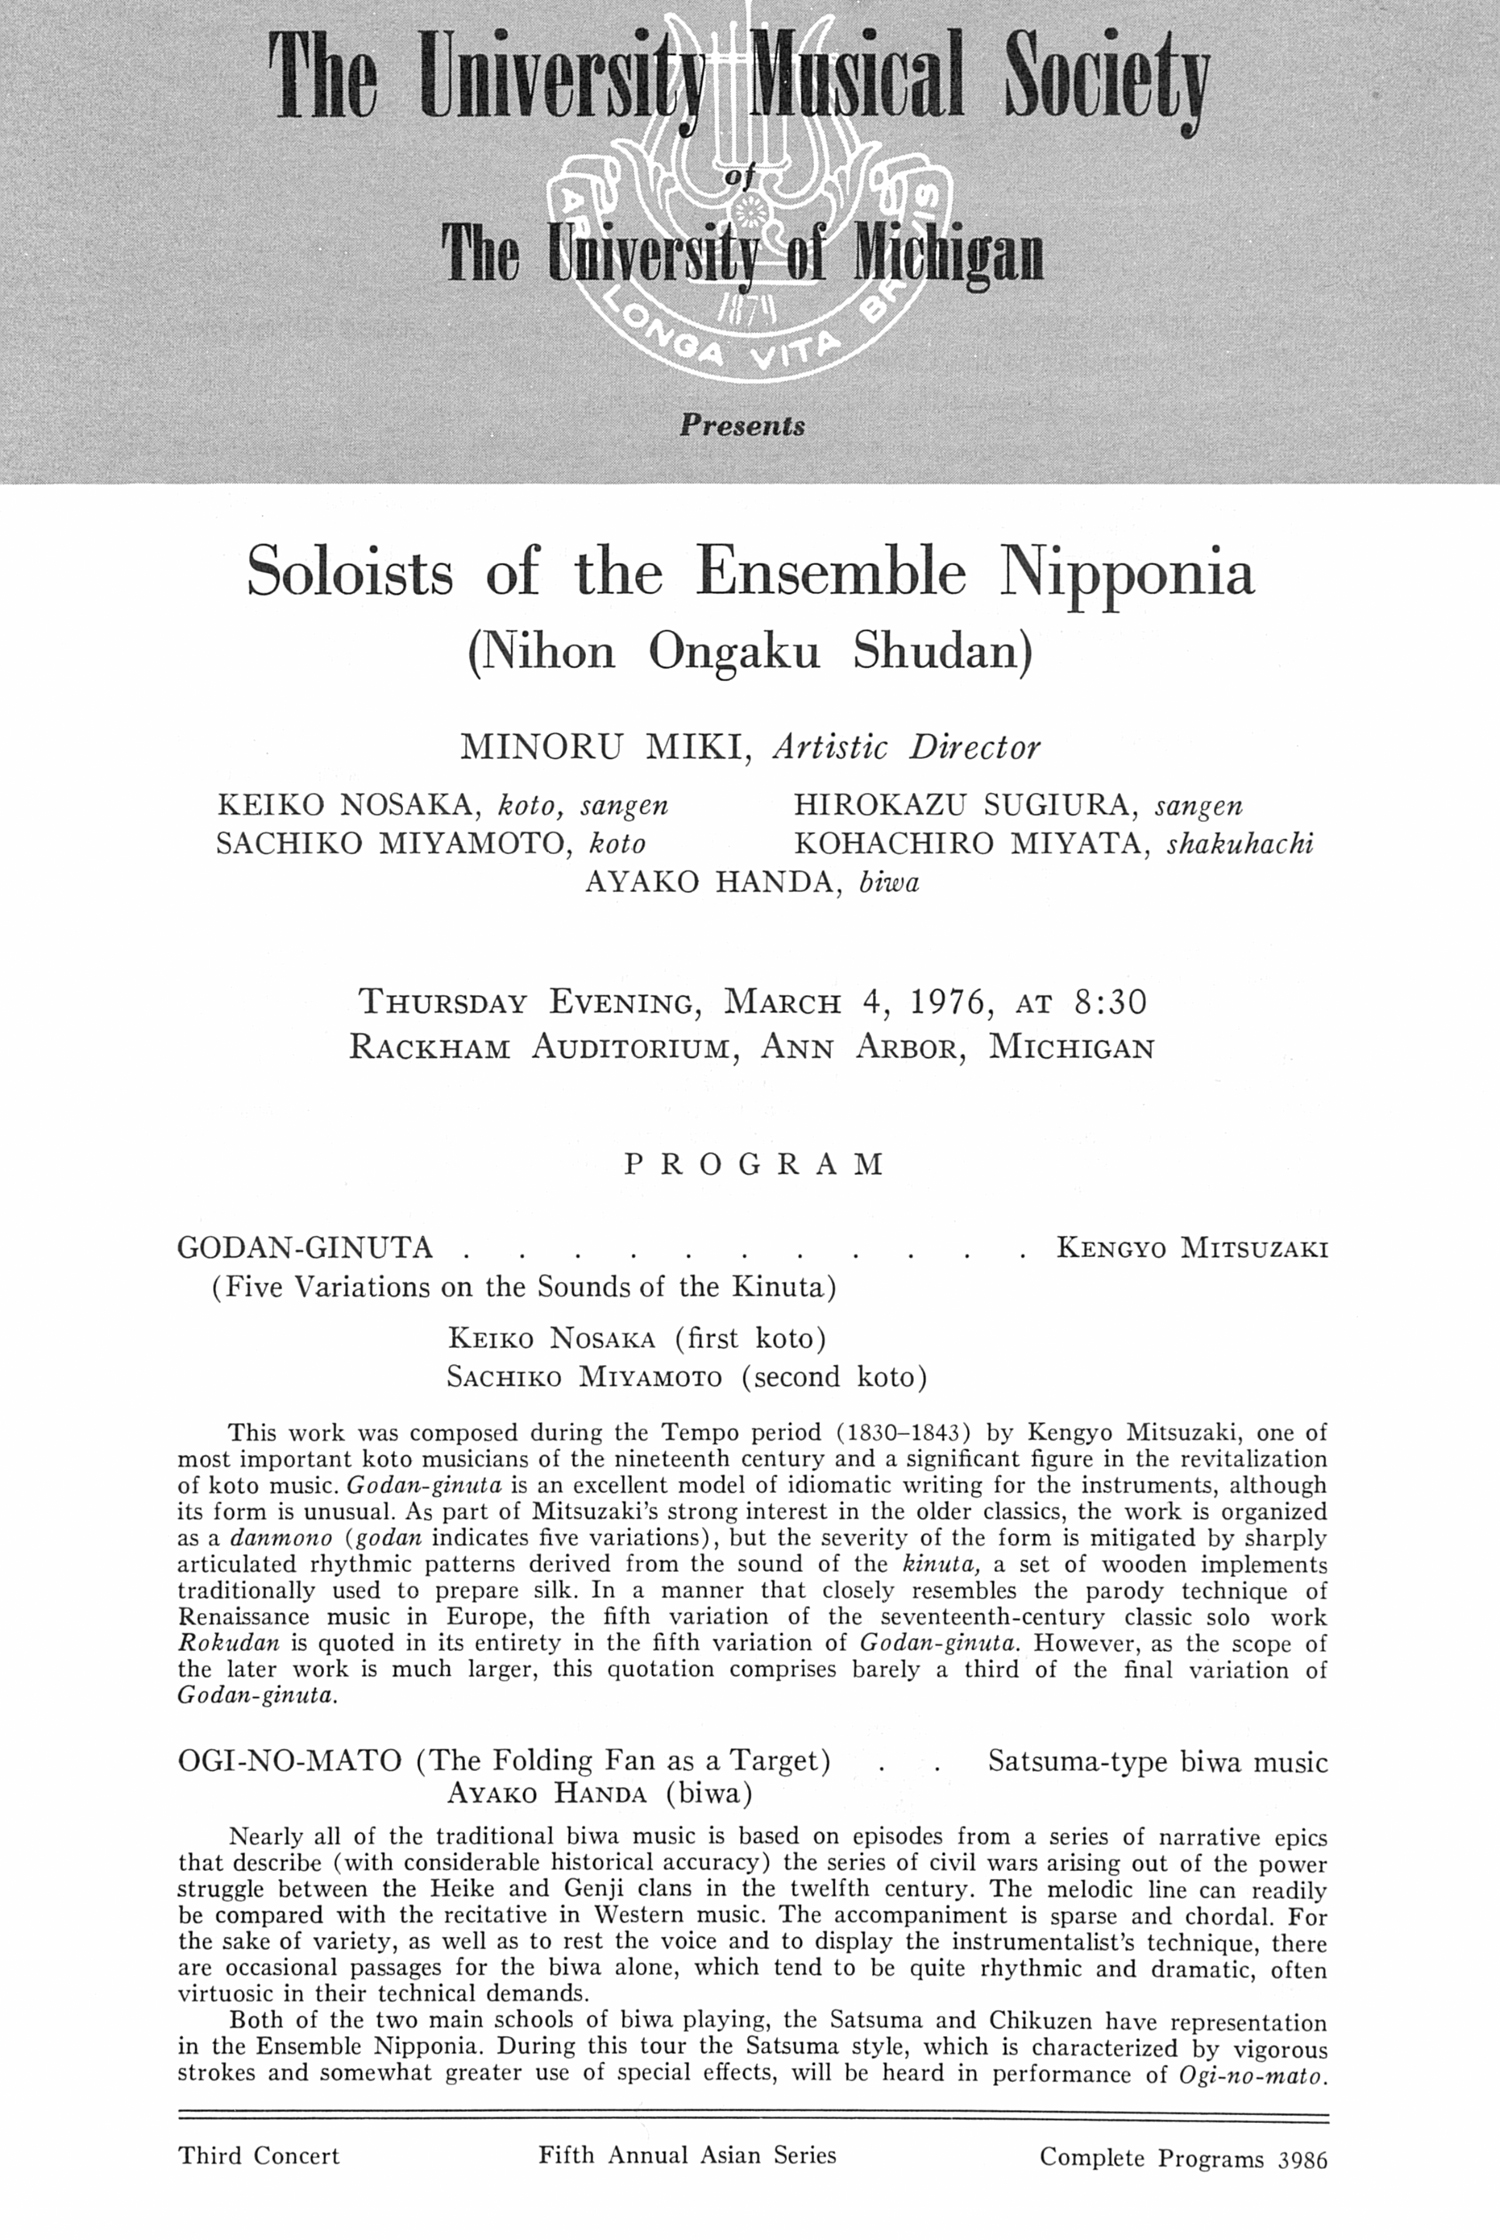 UMS Concert Program, March 4, 1976: Soloists Of The Ensemble Nipponia -- Nihon Ongaku Shudan image